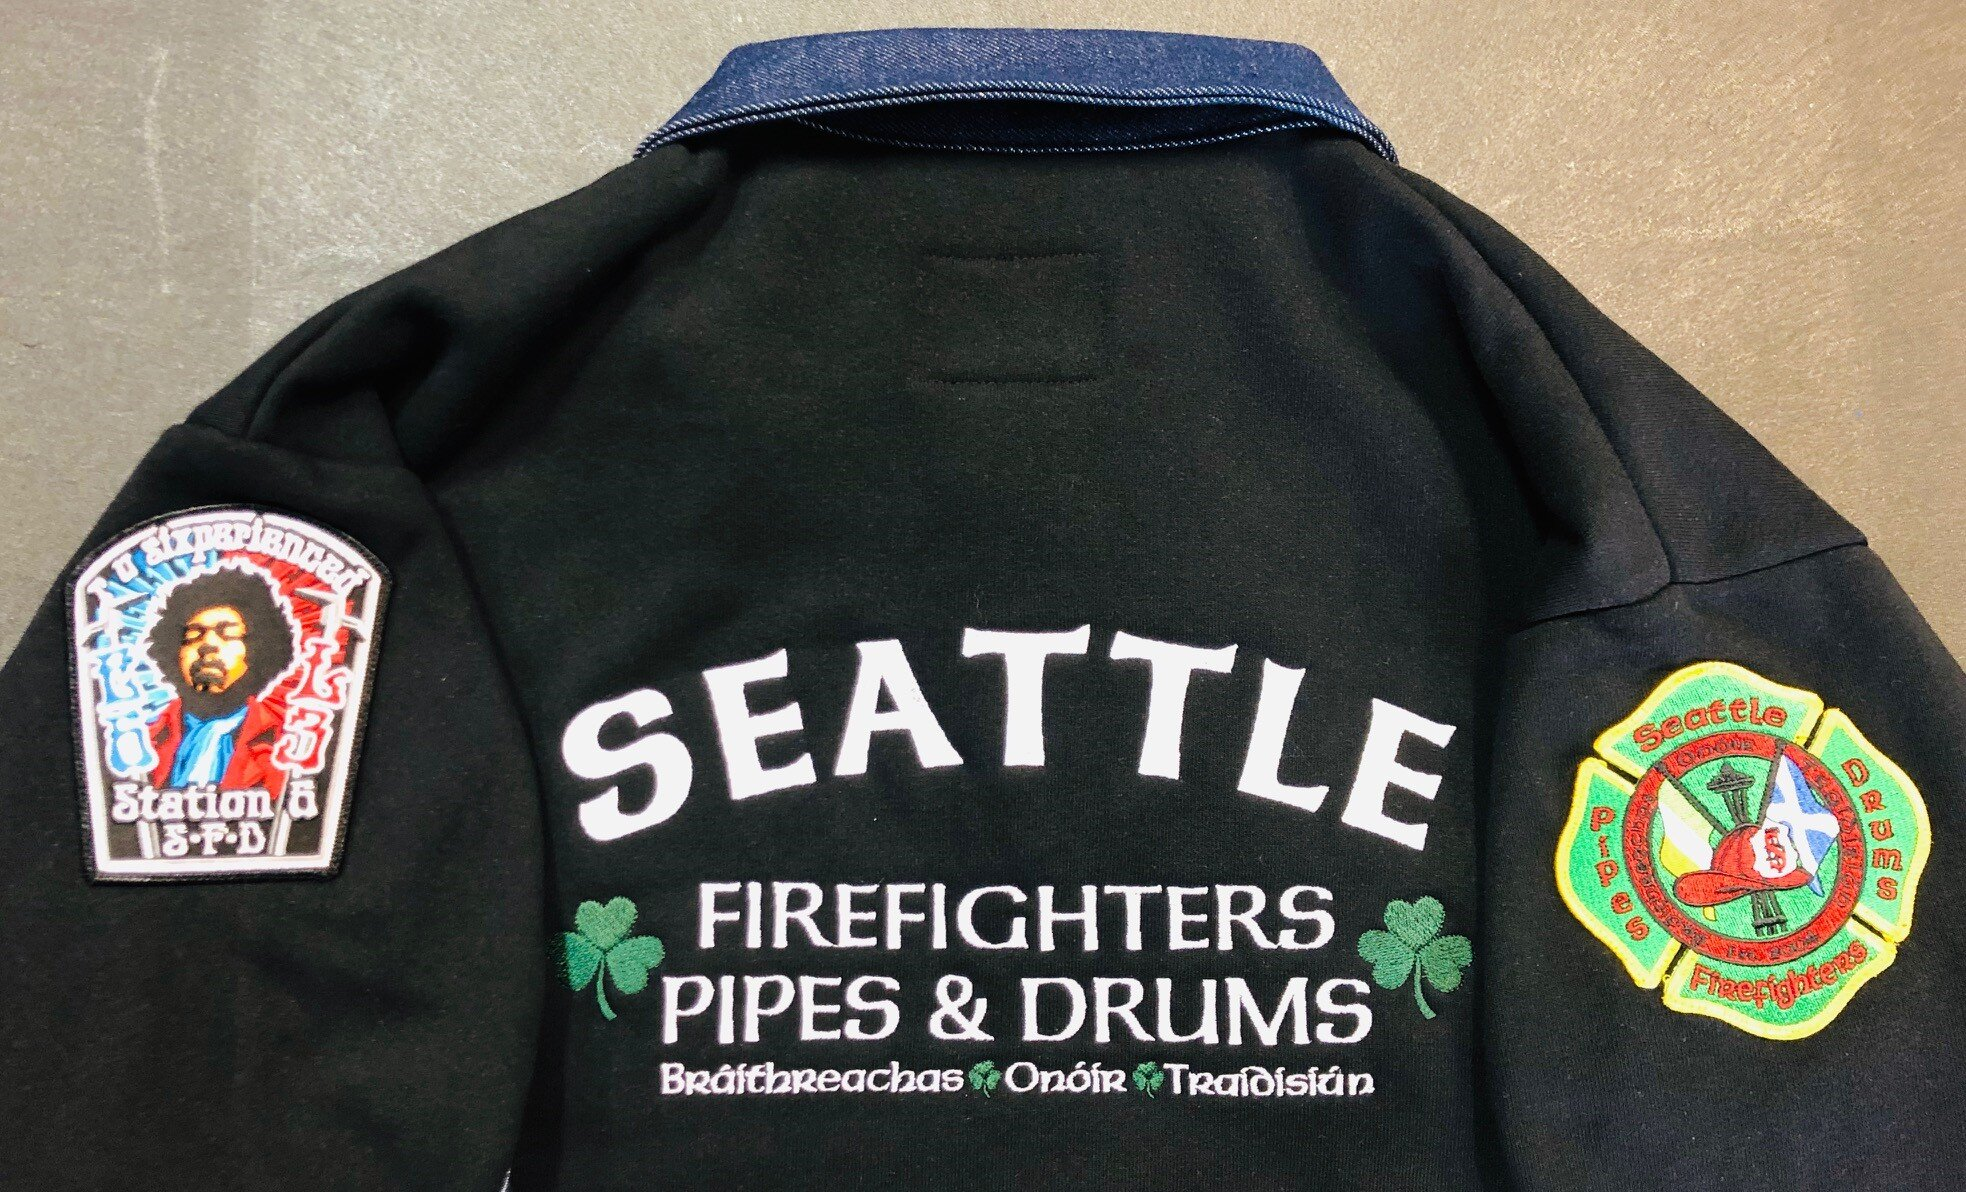 logounltd_laser_etching_embroidery_screen_printing_apparel_uniform_custom_tshirts_t_shirt_kirkland_bellevue_seattle_redmond_woodinville_branded_merchandise_promotional_products_logo_unltd_firefighters_pipes_drums (4).jpg